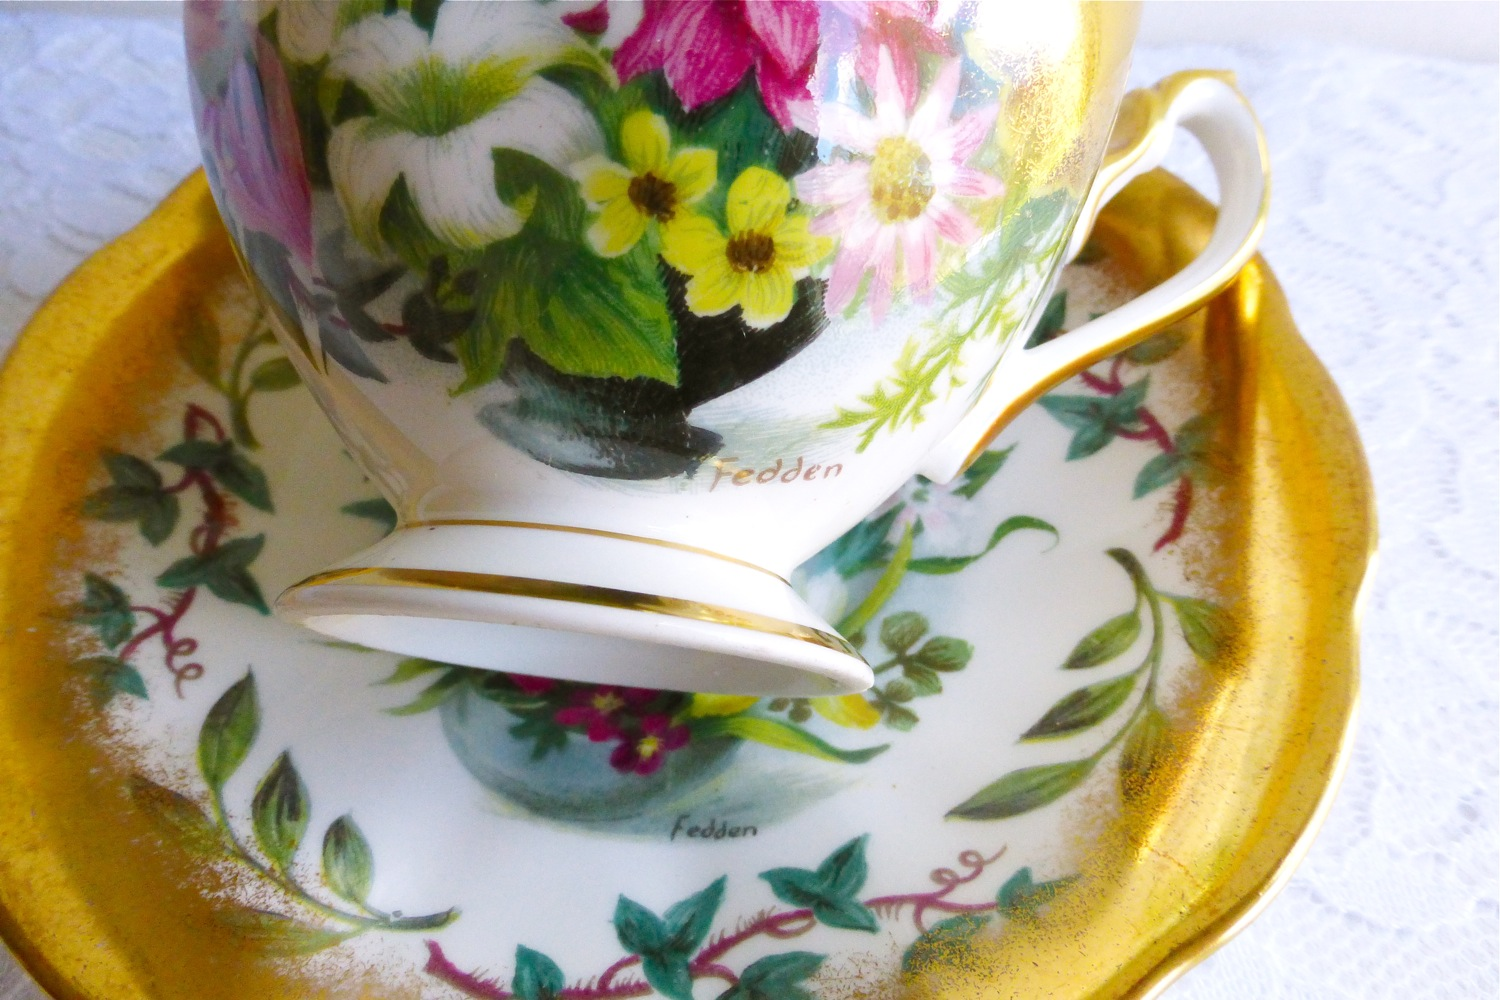 vintage Queen Anne 'Fedden' teacup and saucer, vintage teacup and saucer, Mary Fedden teacup and saucer, artist Mary Fedden teacup art, teacup artwork of Mary Fedden, signed Mary Fedden Queen Anne teacup and saucer, Fedden teacup, vintage Fedden teacup and saucer, vintage Queen Anne floral teacup and saucer, vintage Queen Anne gold gilded teacup and saucer, vintage pink floral teacup, vintage yellow floral teacup, vintage ivy teacup, vintage green leaf teacup